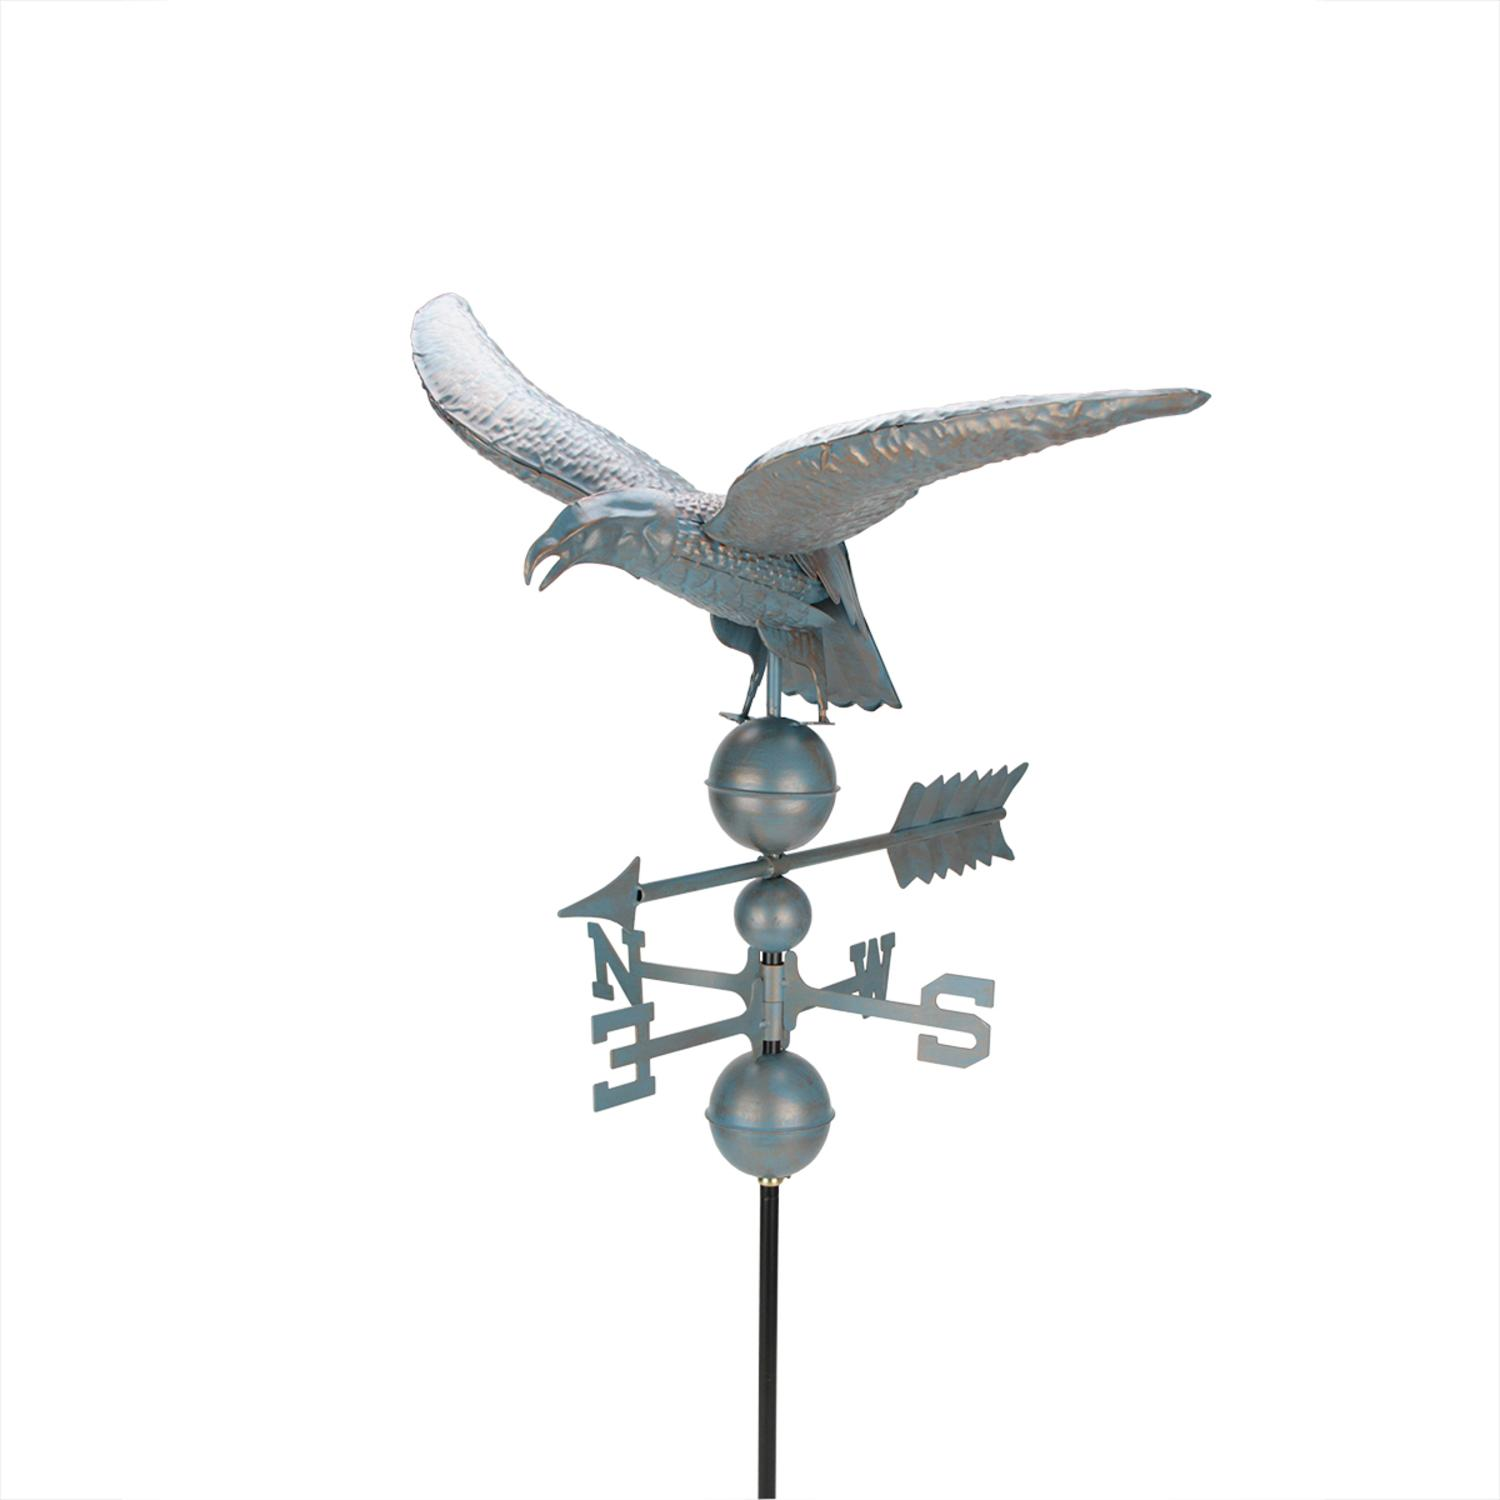 3' Weathered Copper Patina Eagle Outdoor Weathervane by DAK